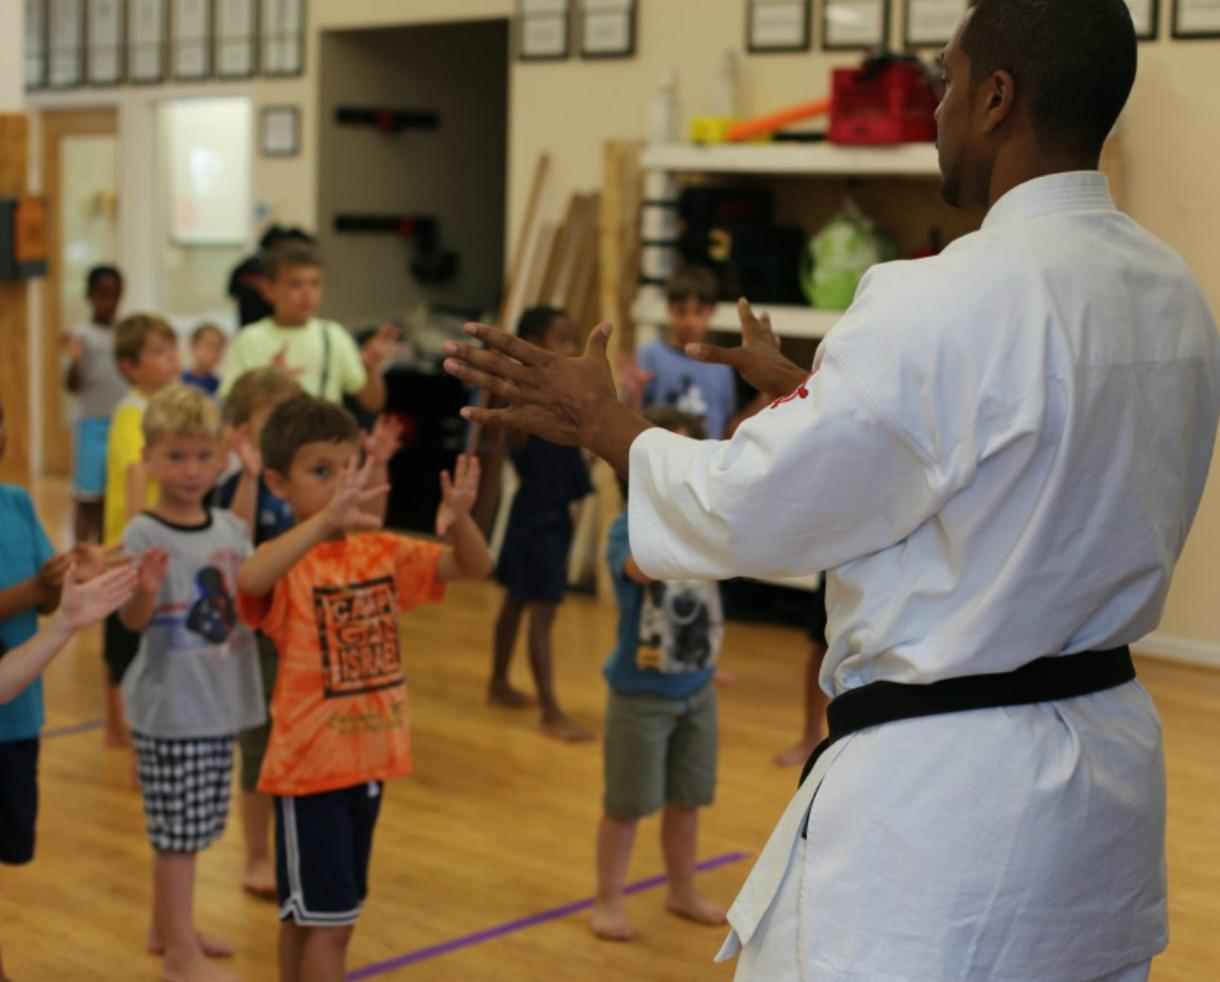 $26 for Parent's Night Out or $37 for 1-Day School's Out Camp at Okinawan Karate Dojo in Ellicott City (Up to 26% Off)